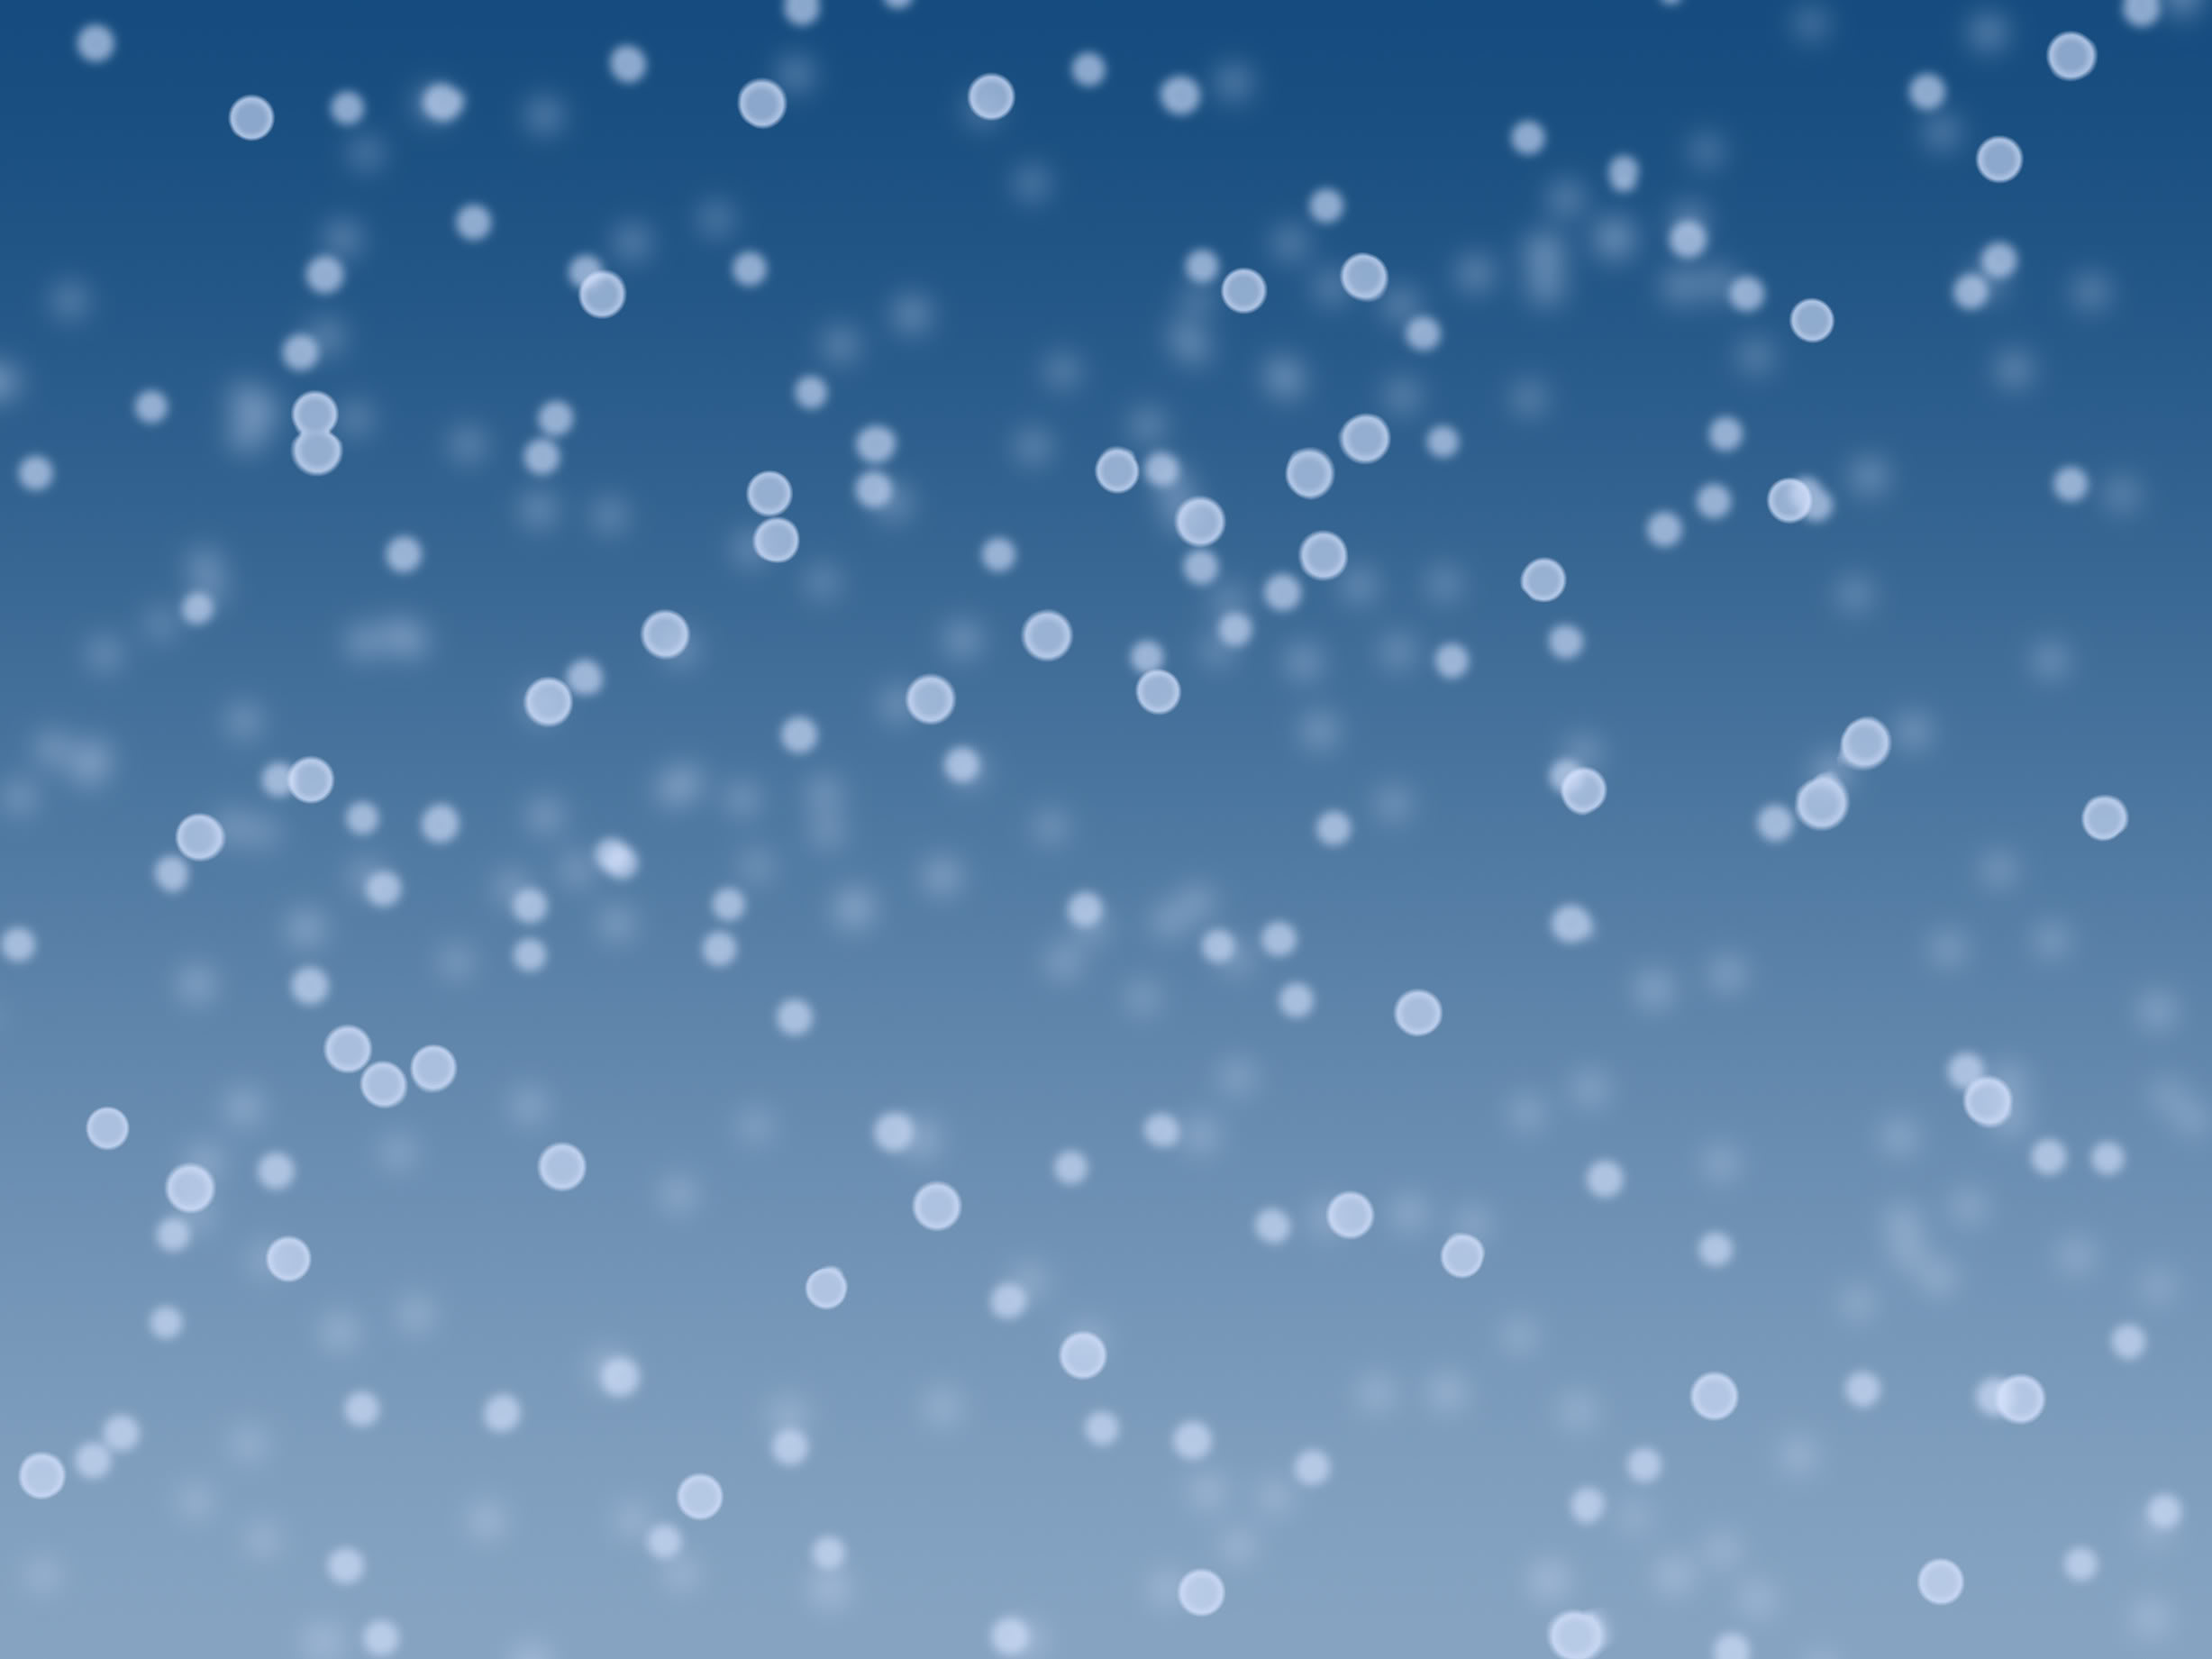 Snow Computer Wallpaper Clipart.